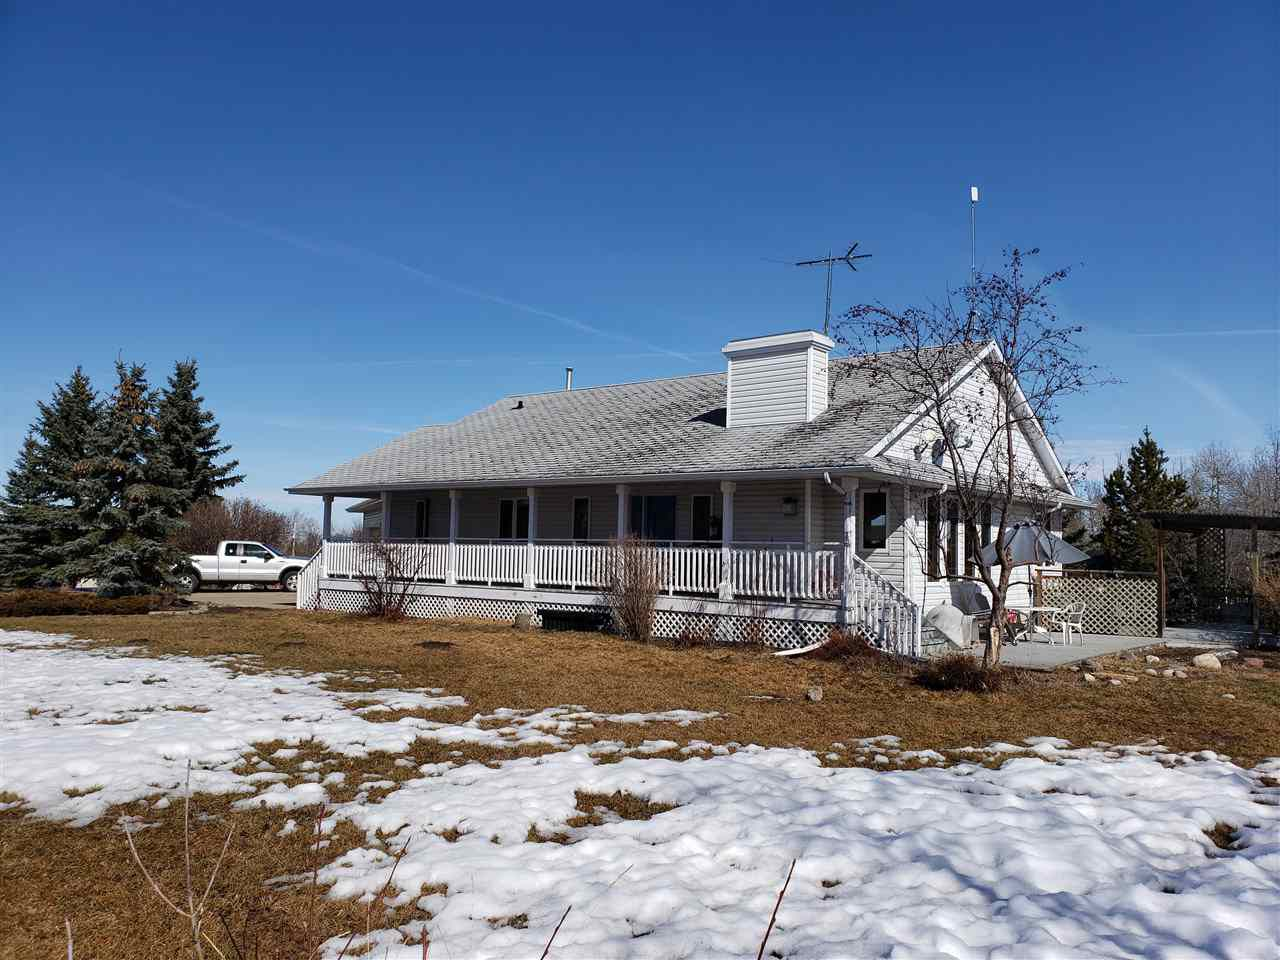 Main Photo: 54315 RANGE ROAD 280: Rural Sturgeon County House for sale : MLS®# E4149335